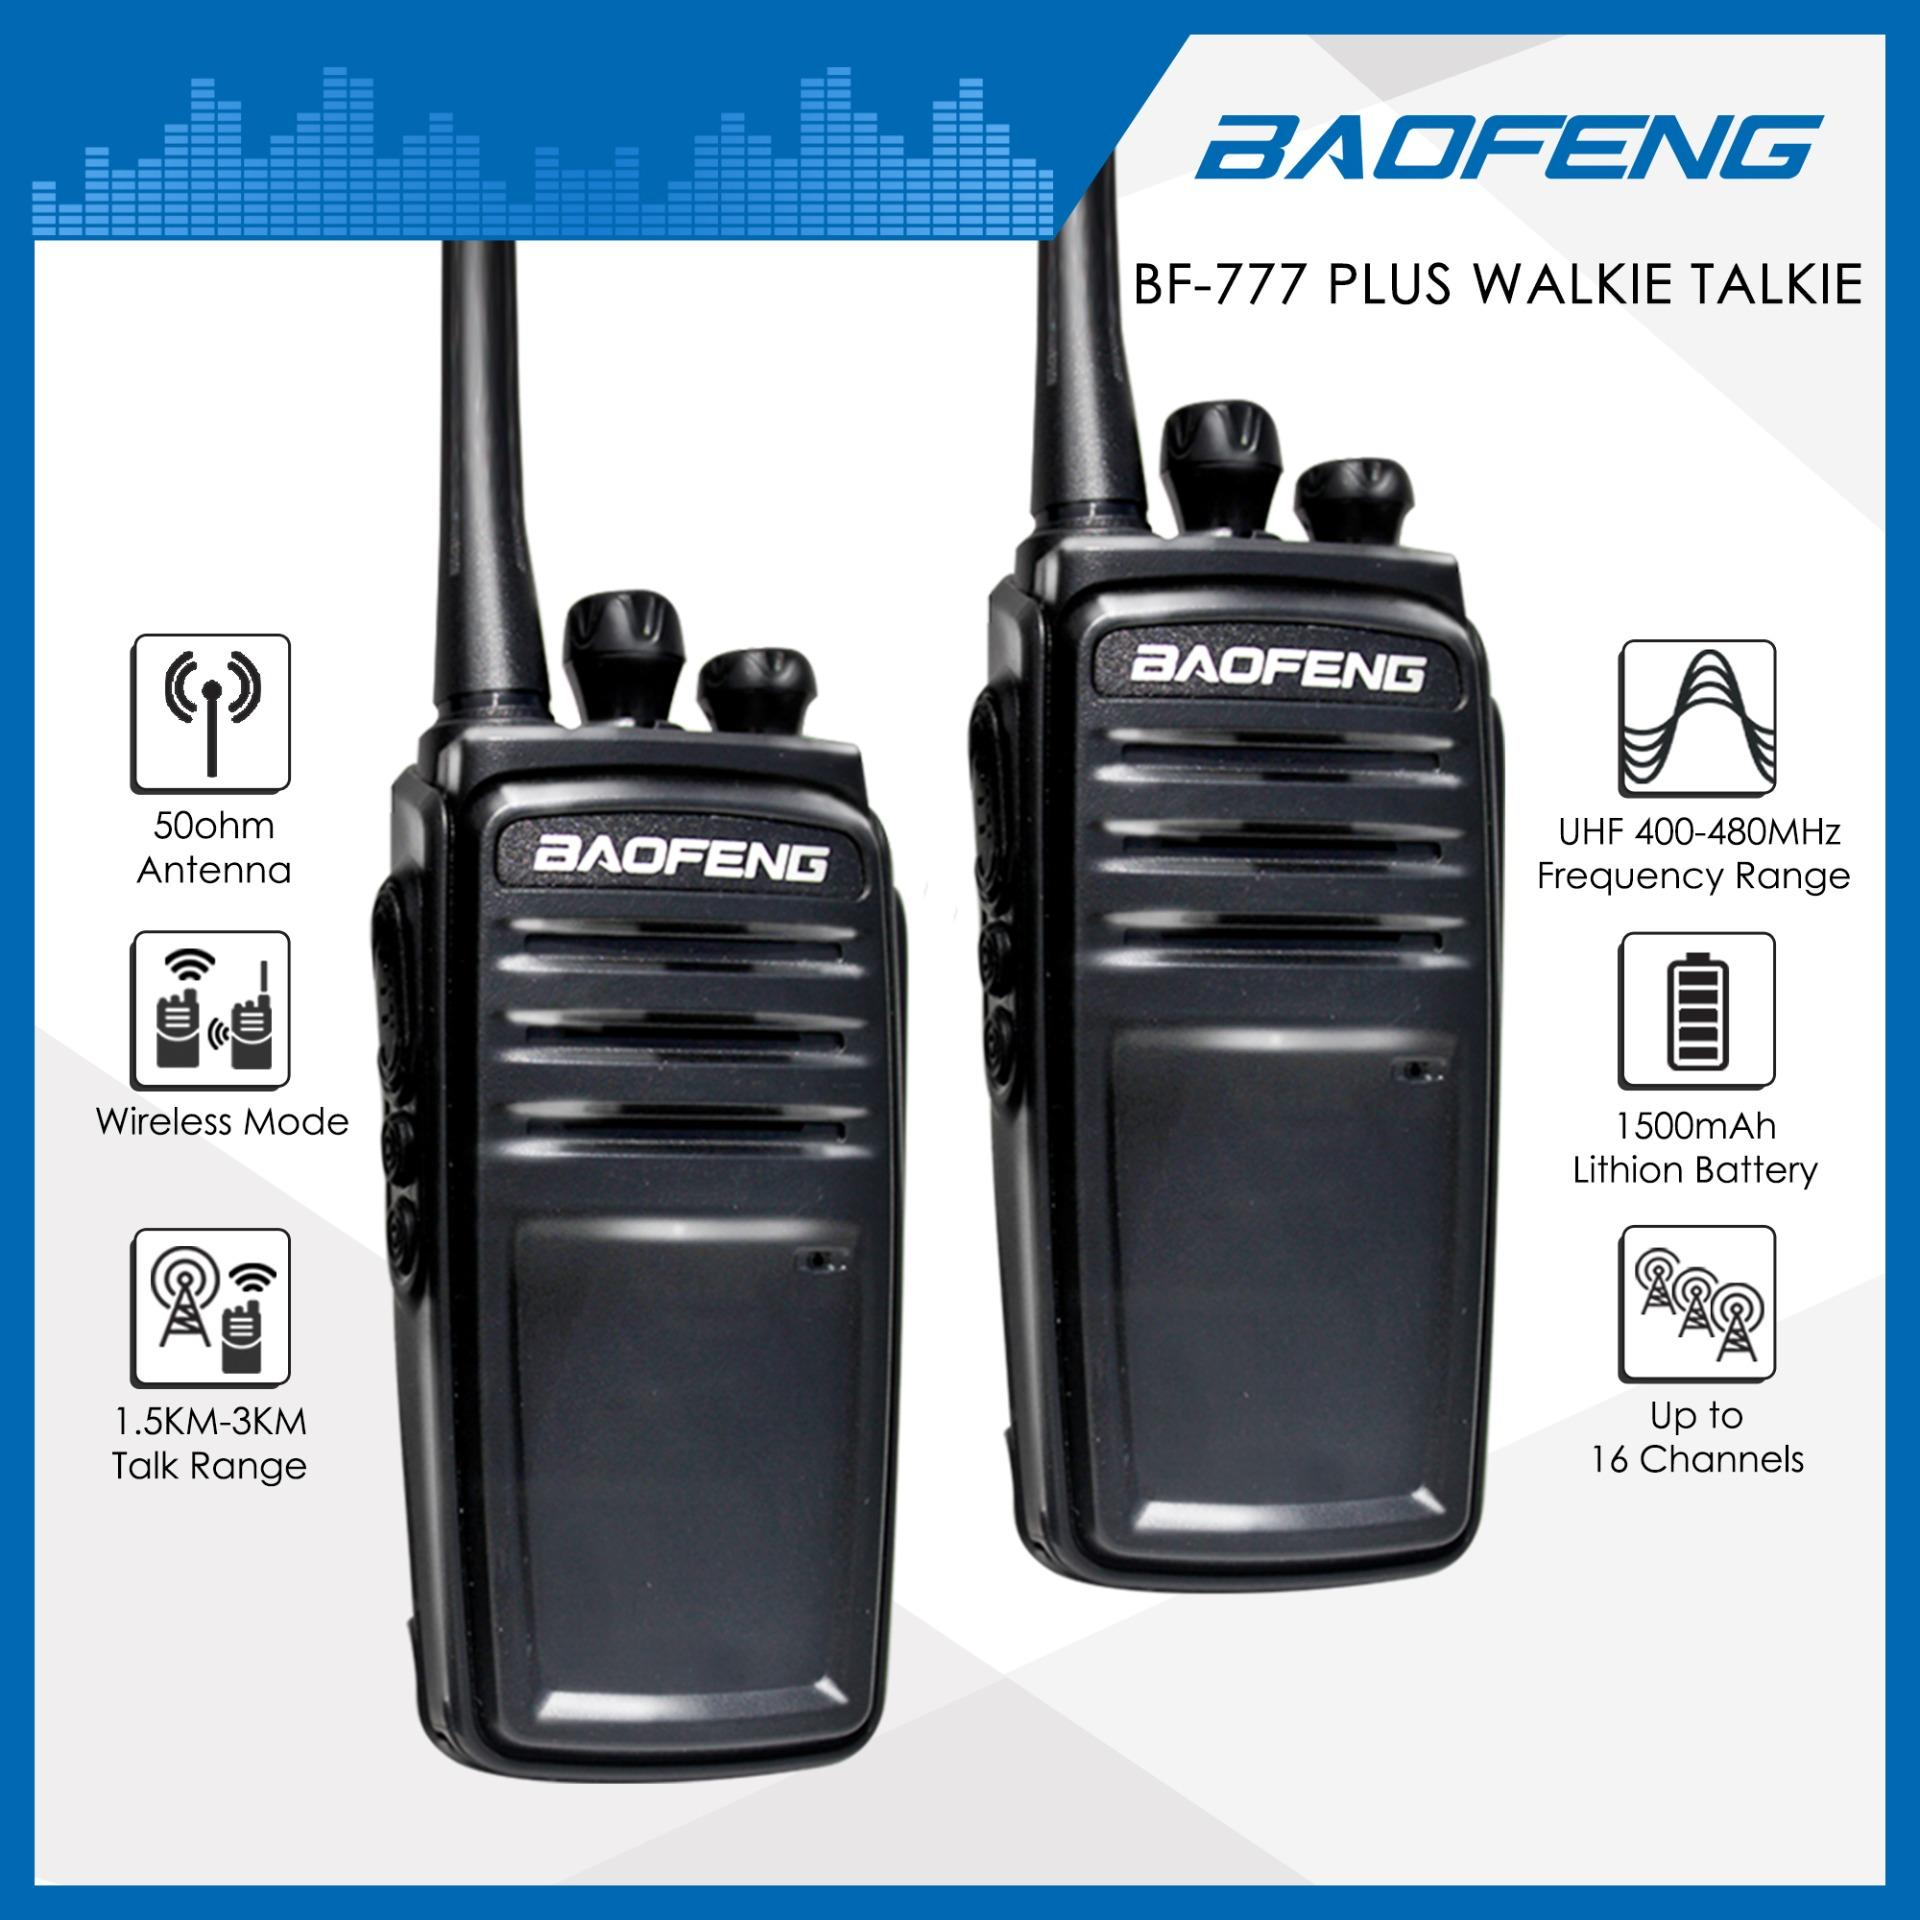 Baofeng BF-777 Plus Walkie Talkie Portable Two Way Radio UHF  Transceiver(2pcs)